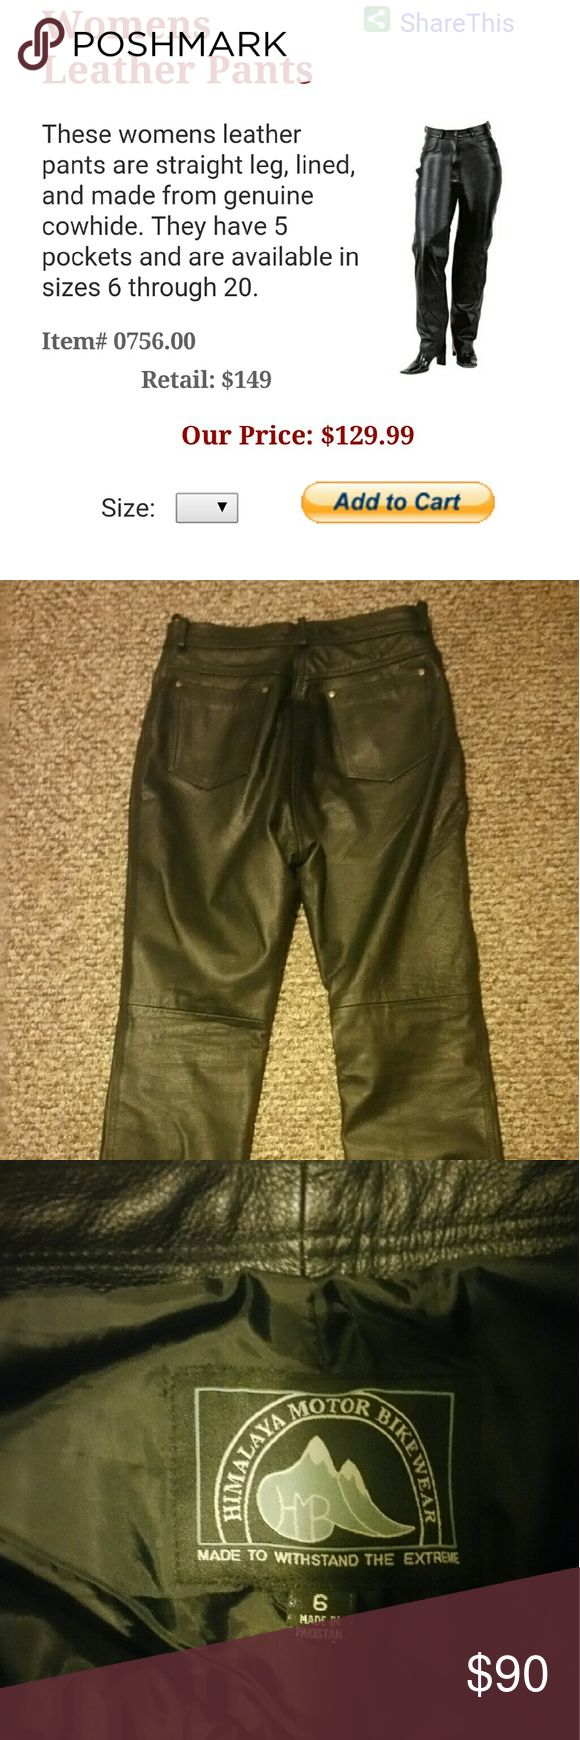 Motorcycle Riding pants Real leather riding pants..worn 3 times. In great condition. No flaws. Smoke-free home.  Himalaya riding gear Pants